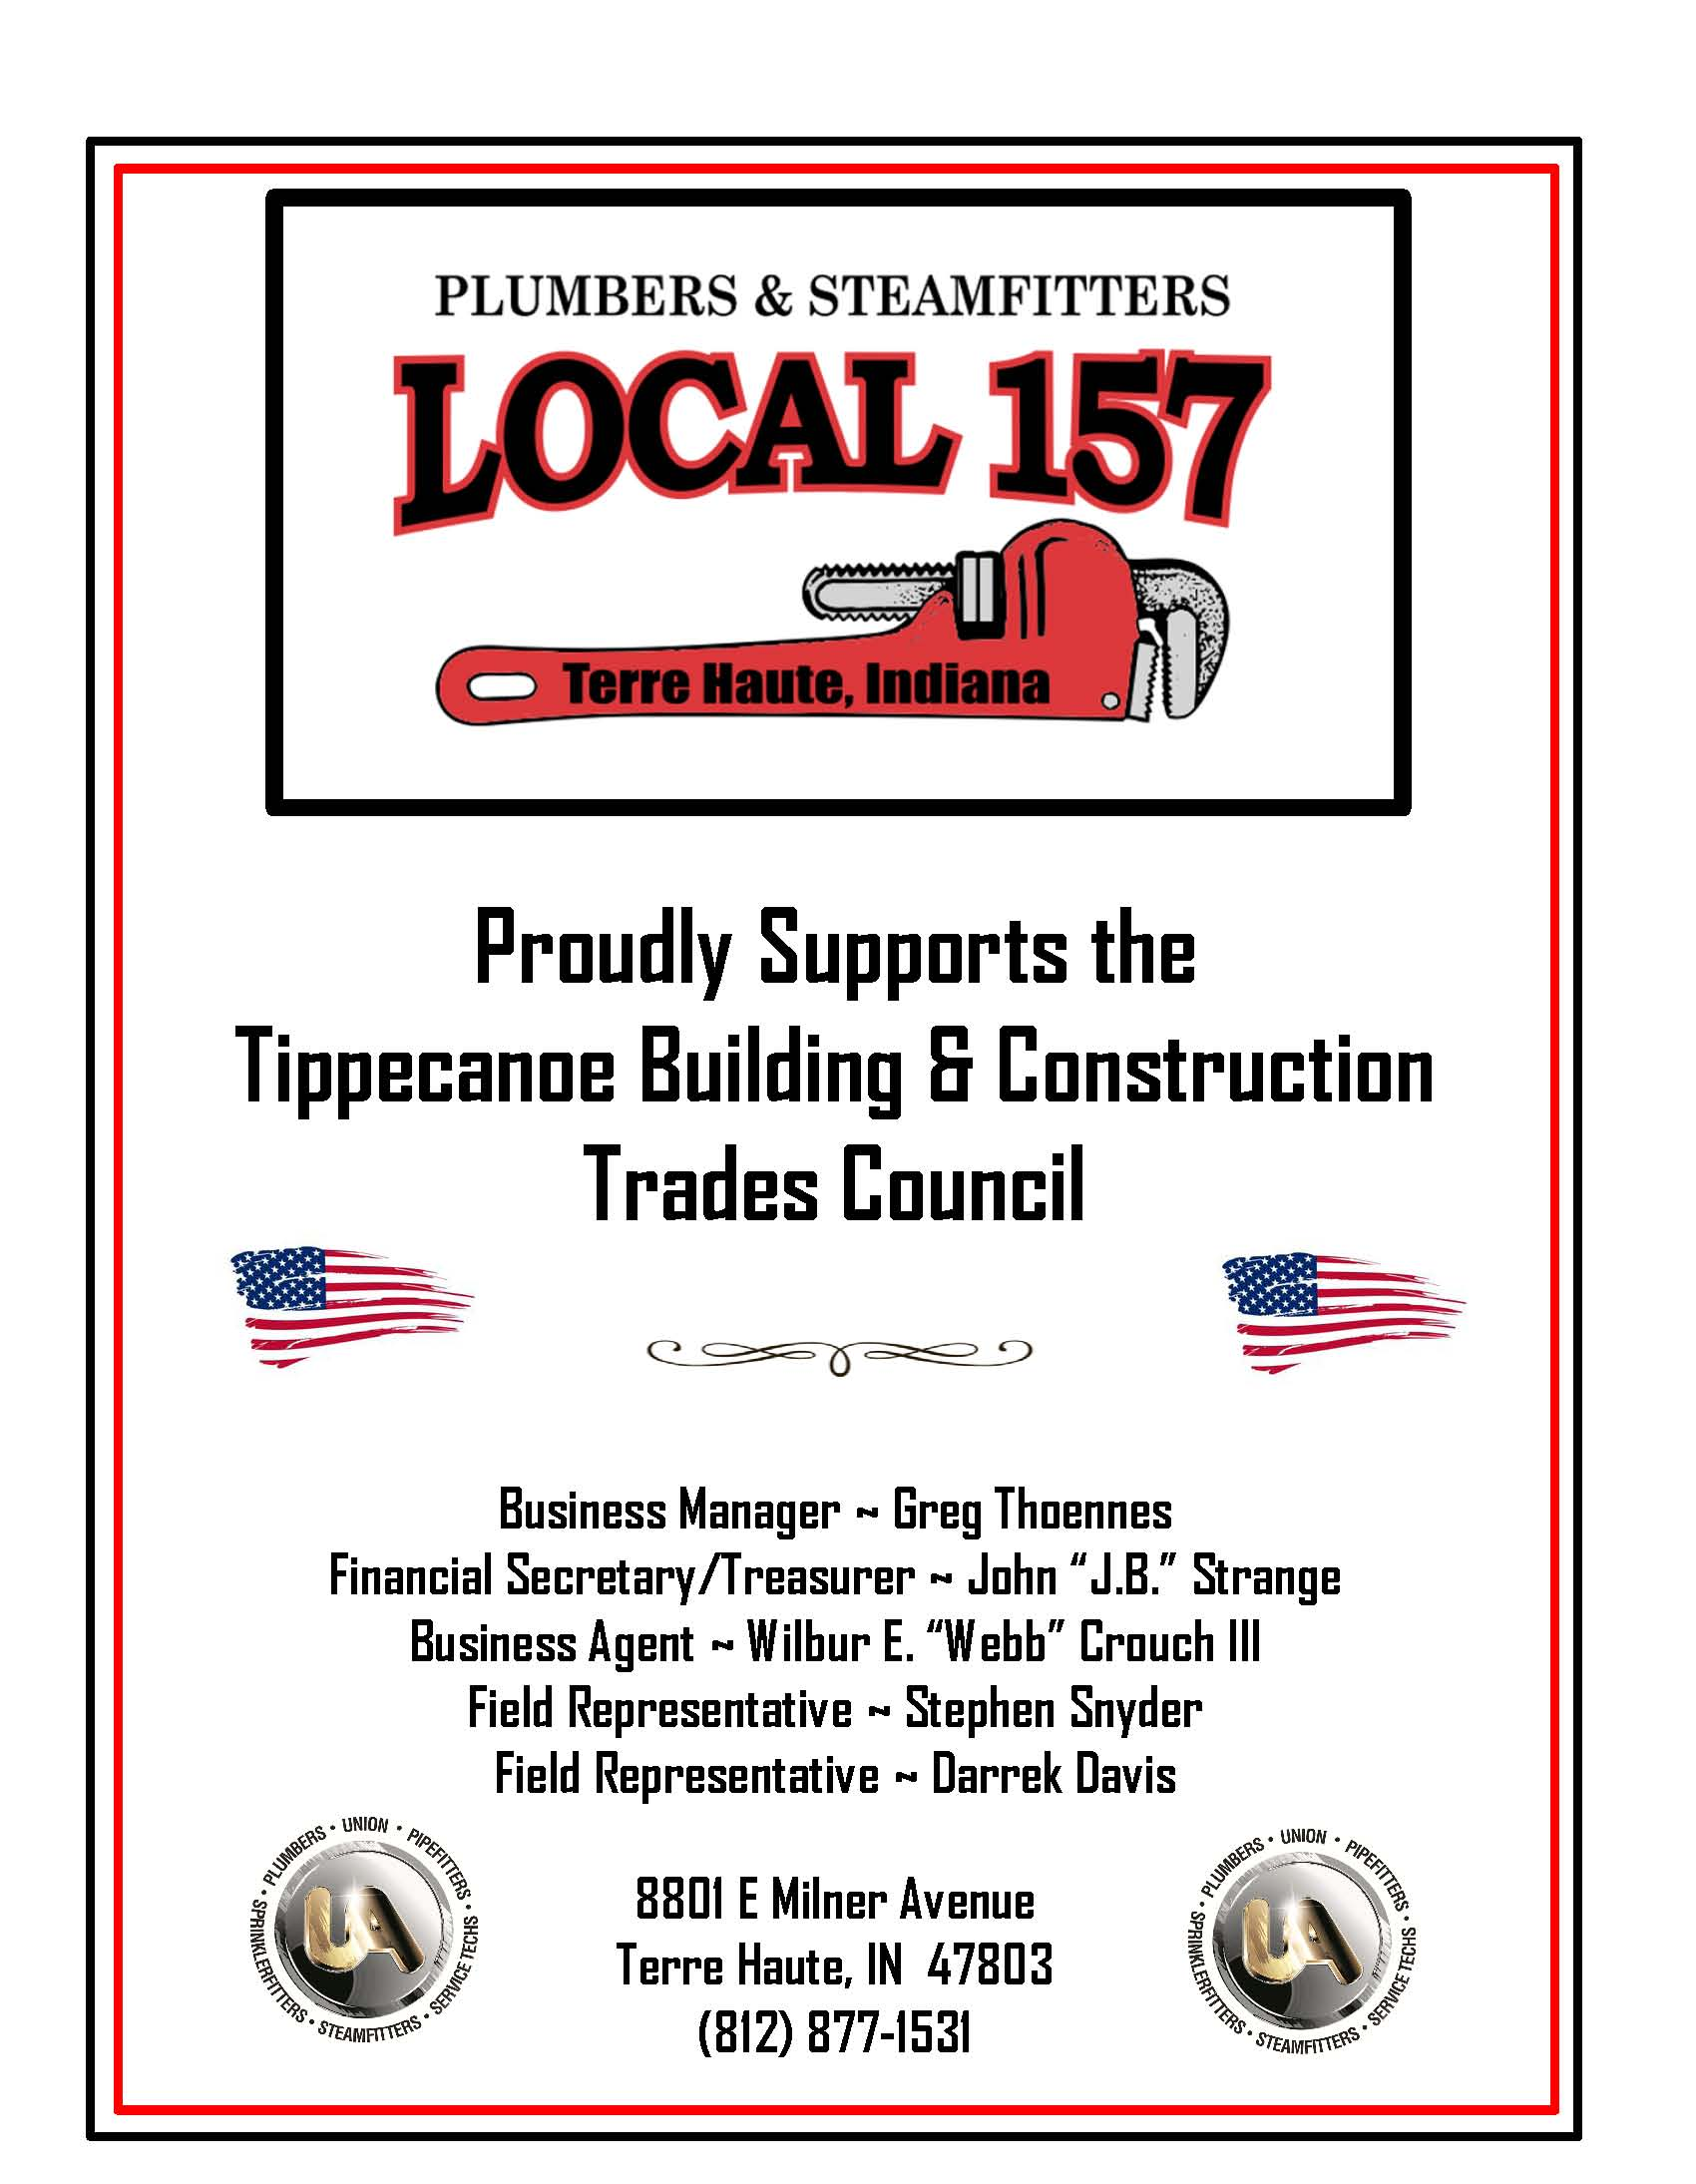 Plumbers and Steamfitters Local 157